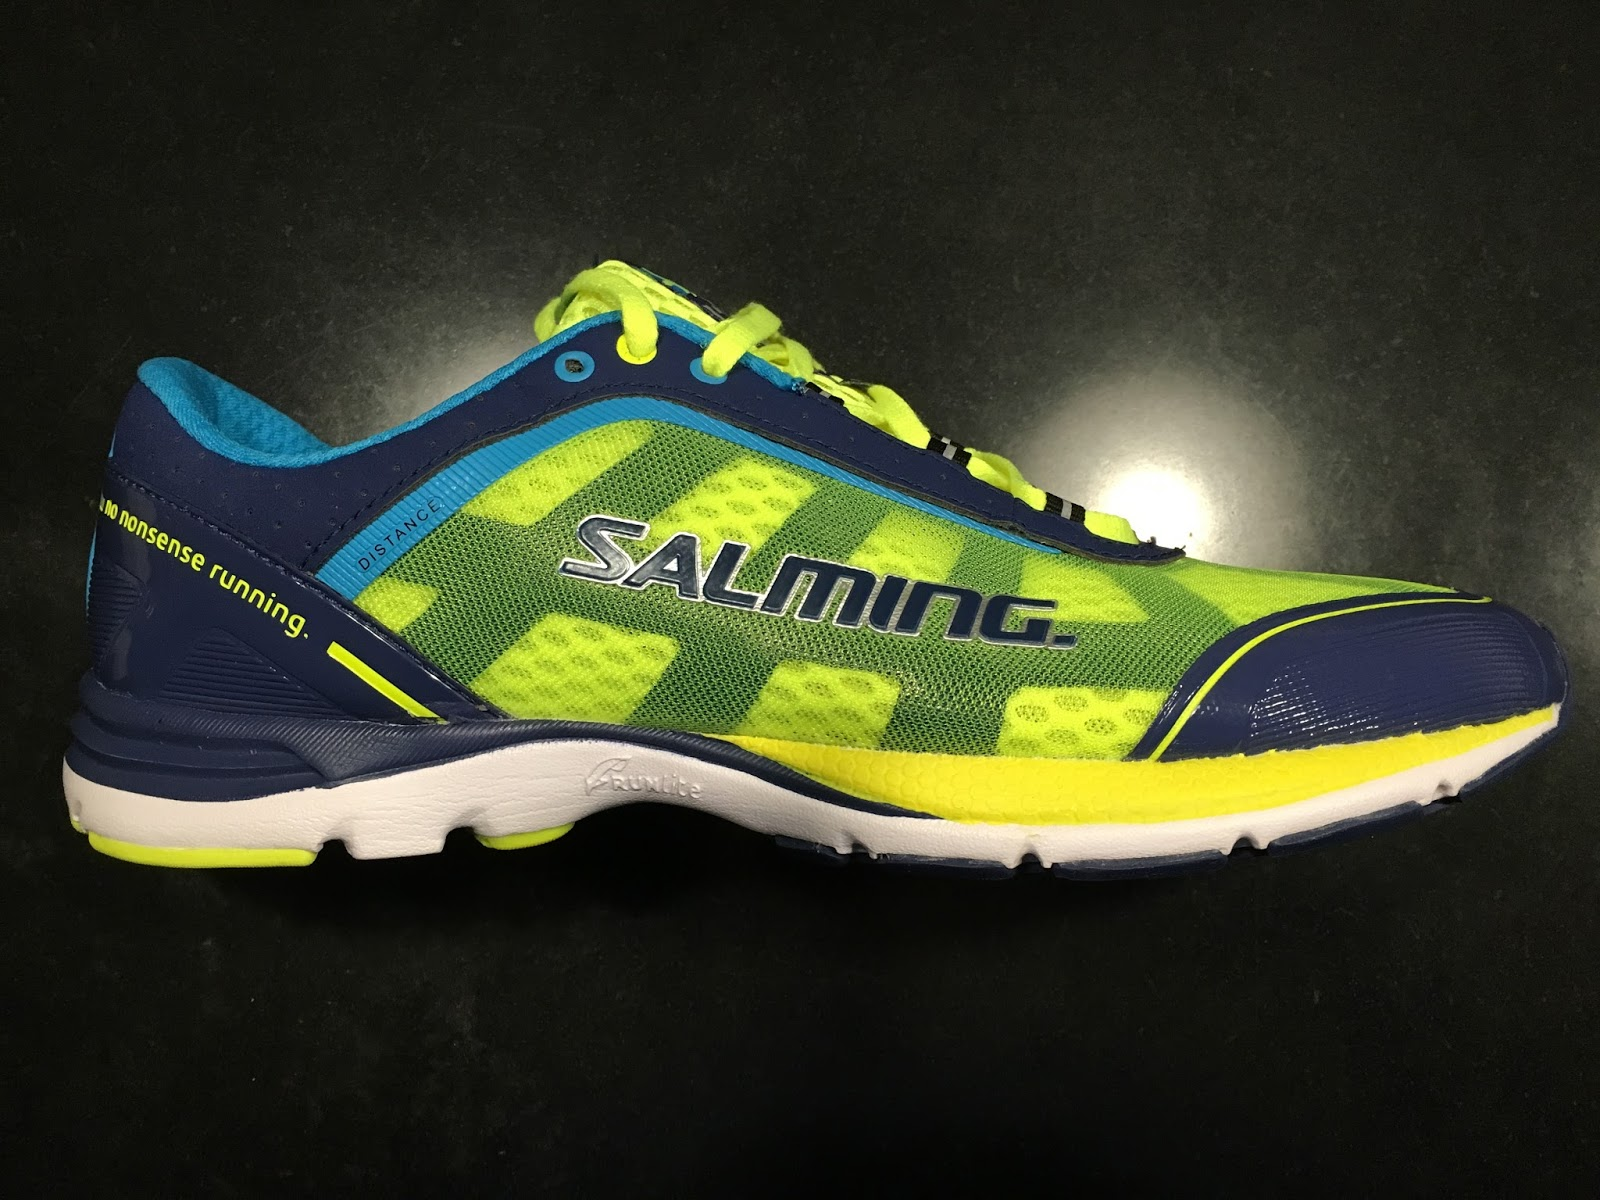 912d9508 Salming designs are backed by a tremendous amount of analysis and care as I  found out when I was tested on their Run-Lab systems at the Running Event  (see ...